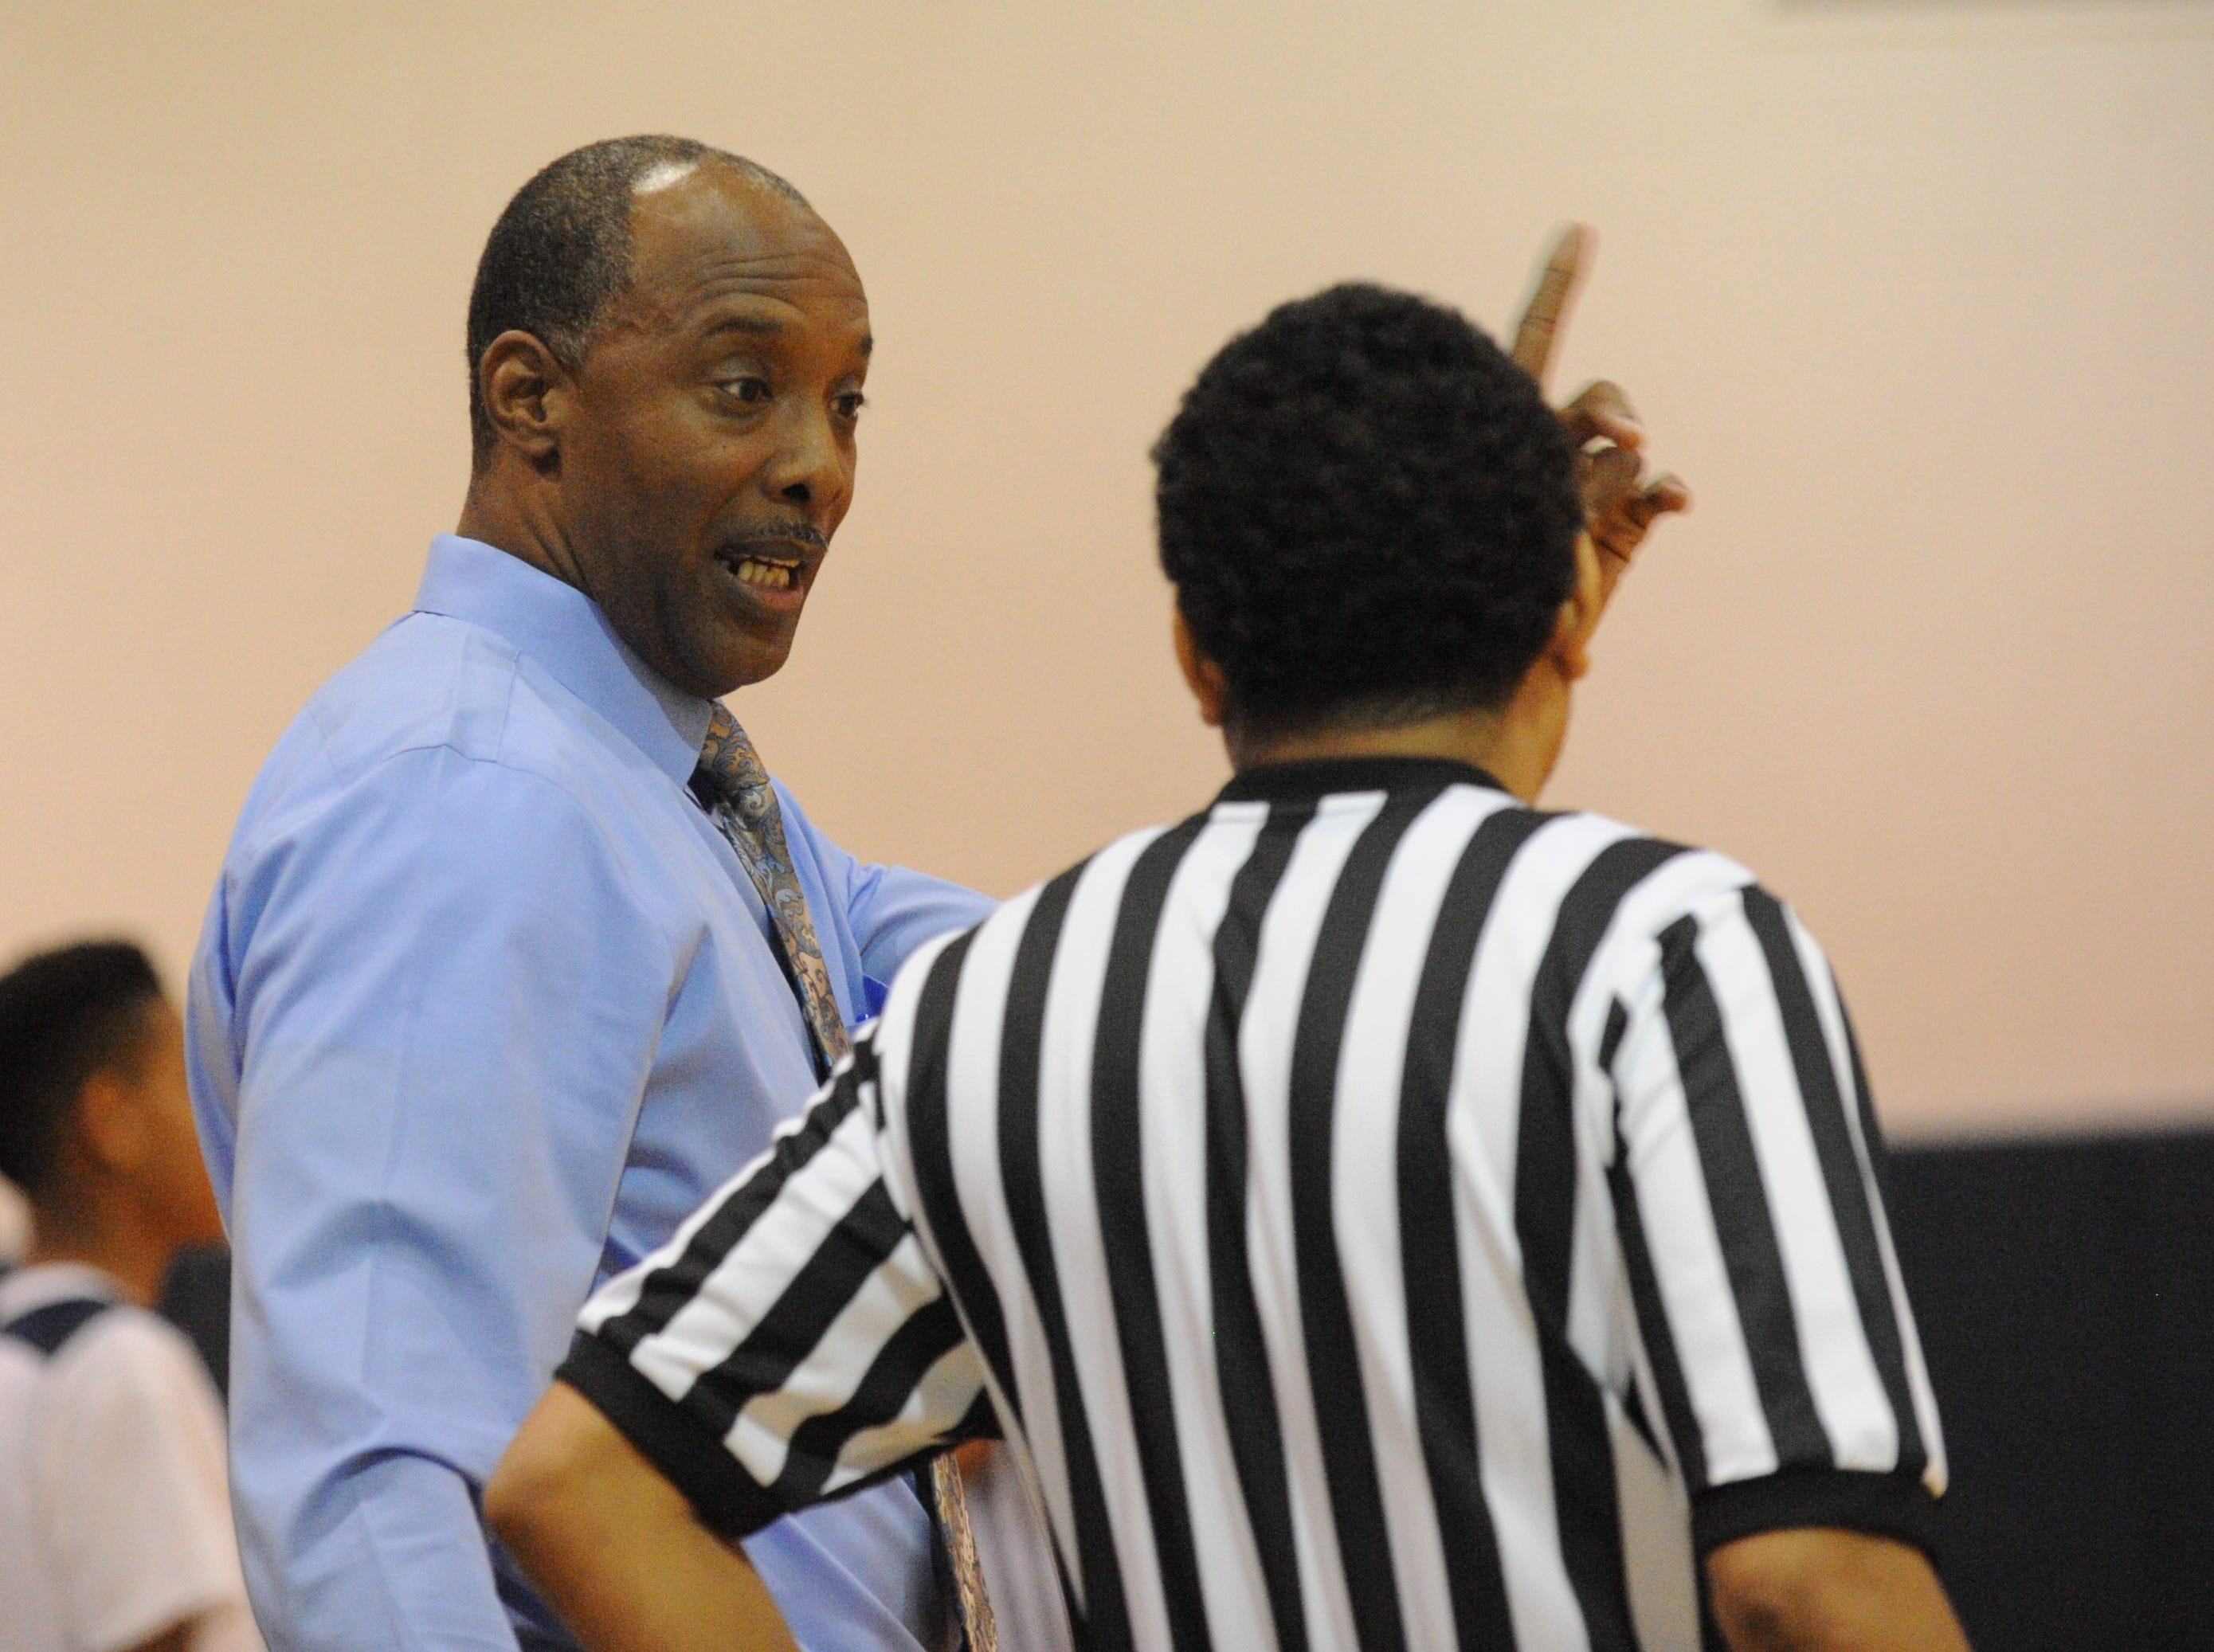 Pocomoke coach Derrick Fooks talks with an official on Tuesday, Dec. 18, 2018. Crisfield beat Pocomoke, 90-35.